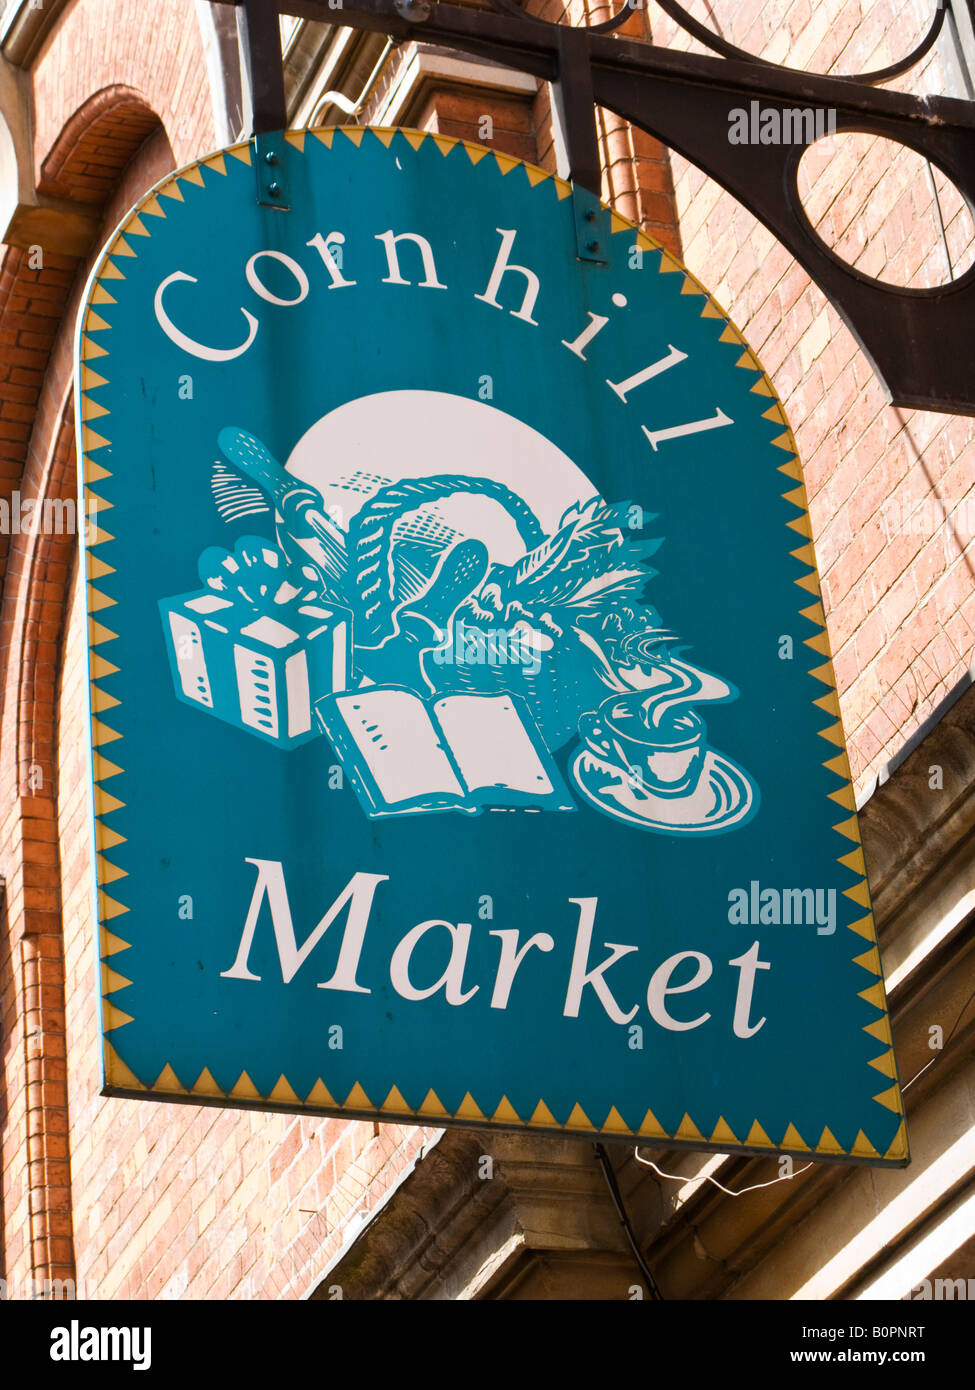 Cornhill indoor Market signage in Lincoln city centre England UK - Stock Image